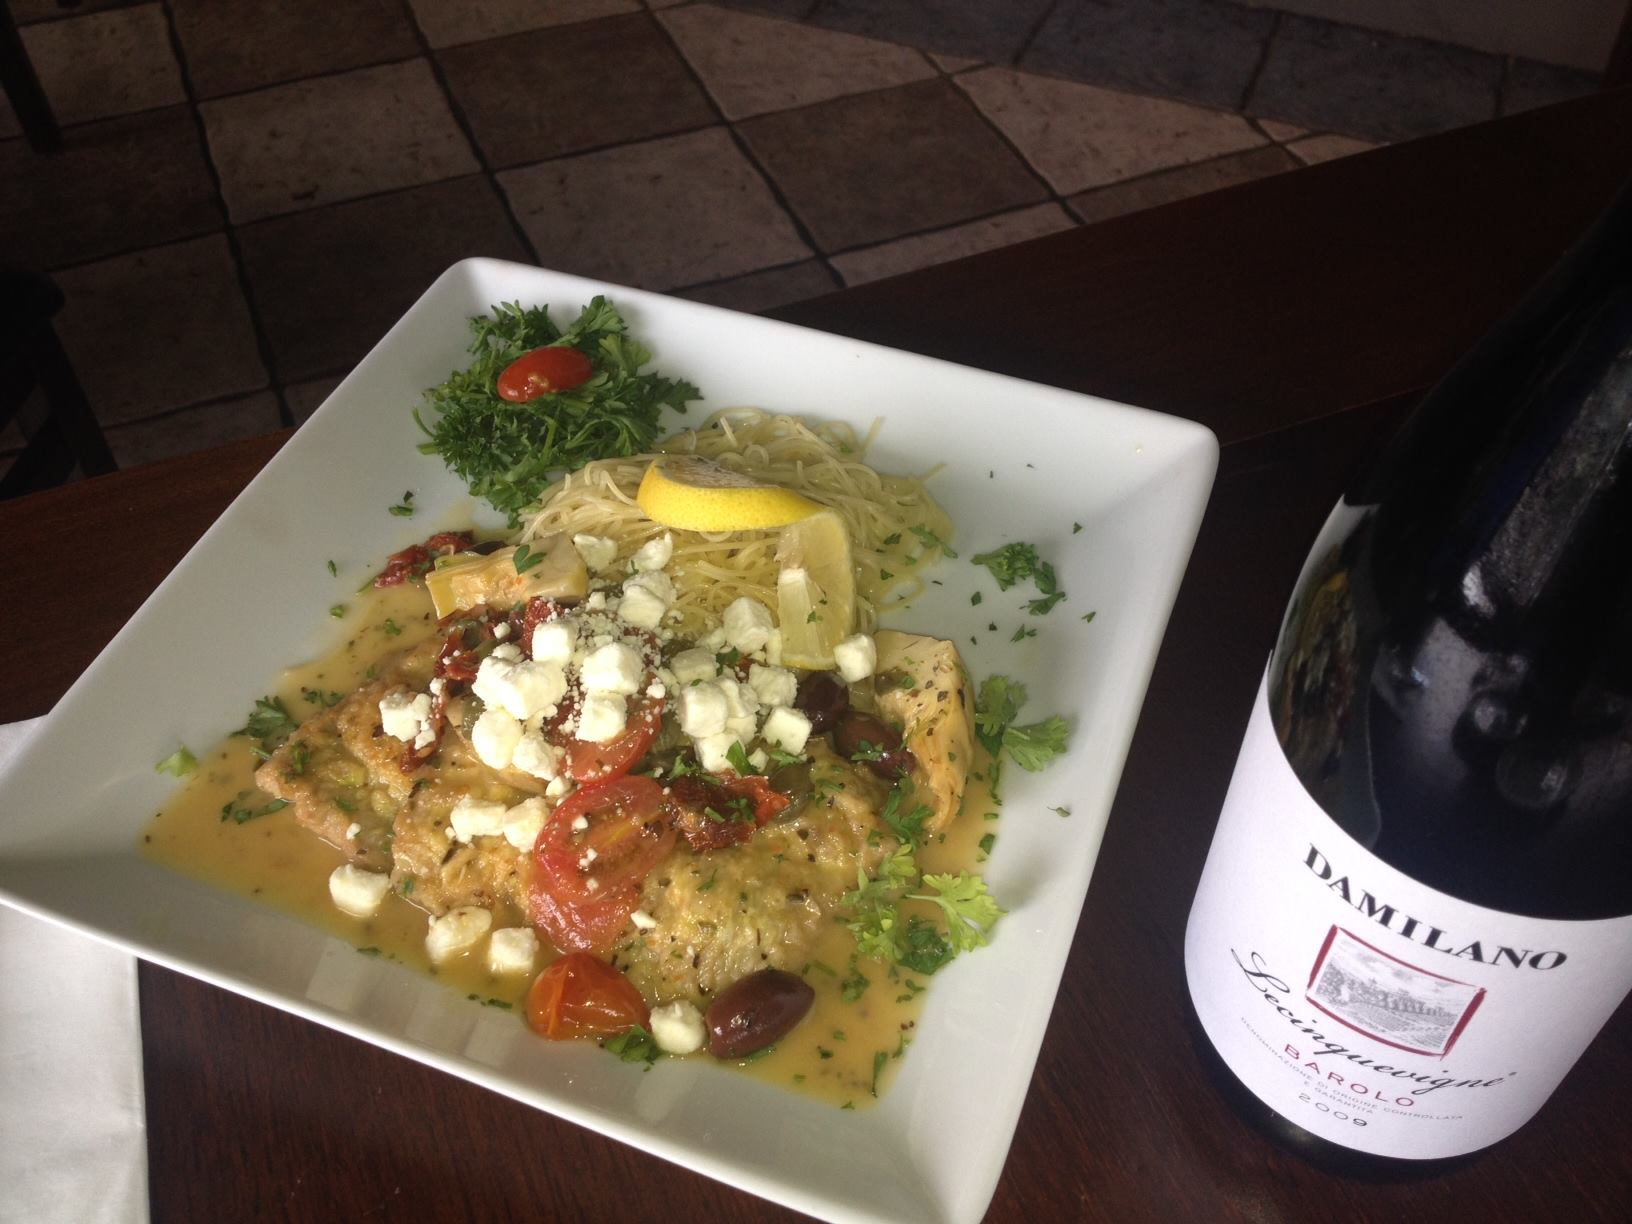 Chicken piccata with angel hair on dish next to wine bottle.